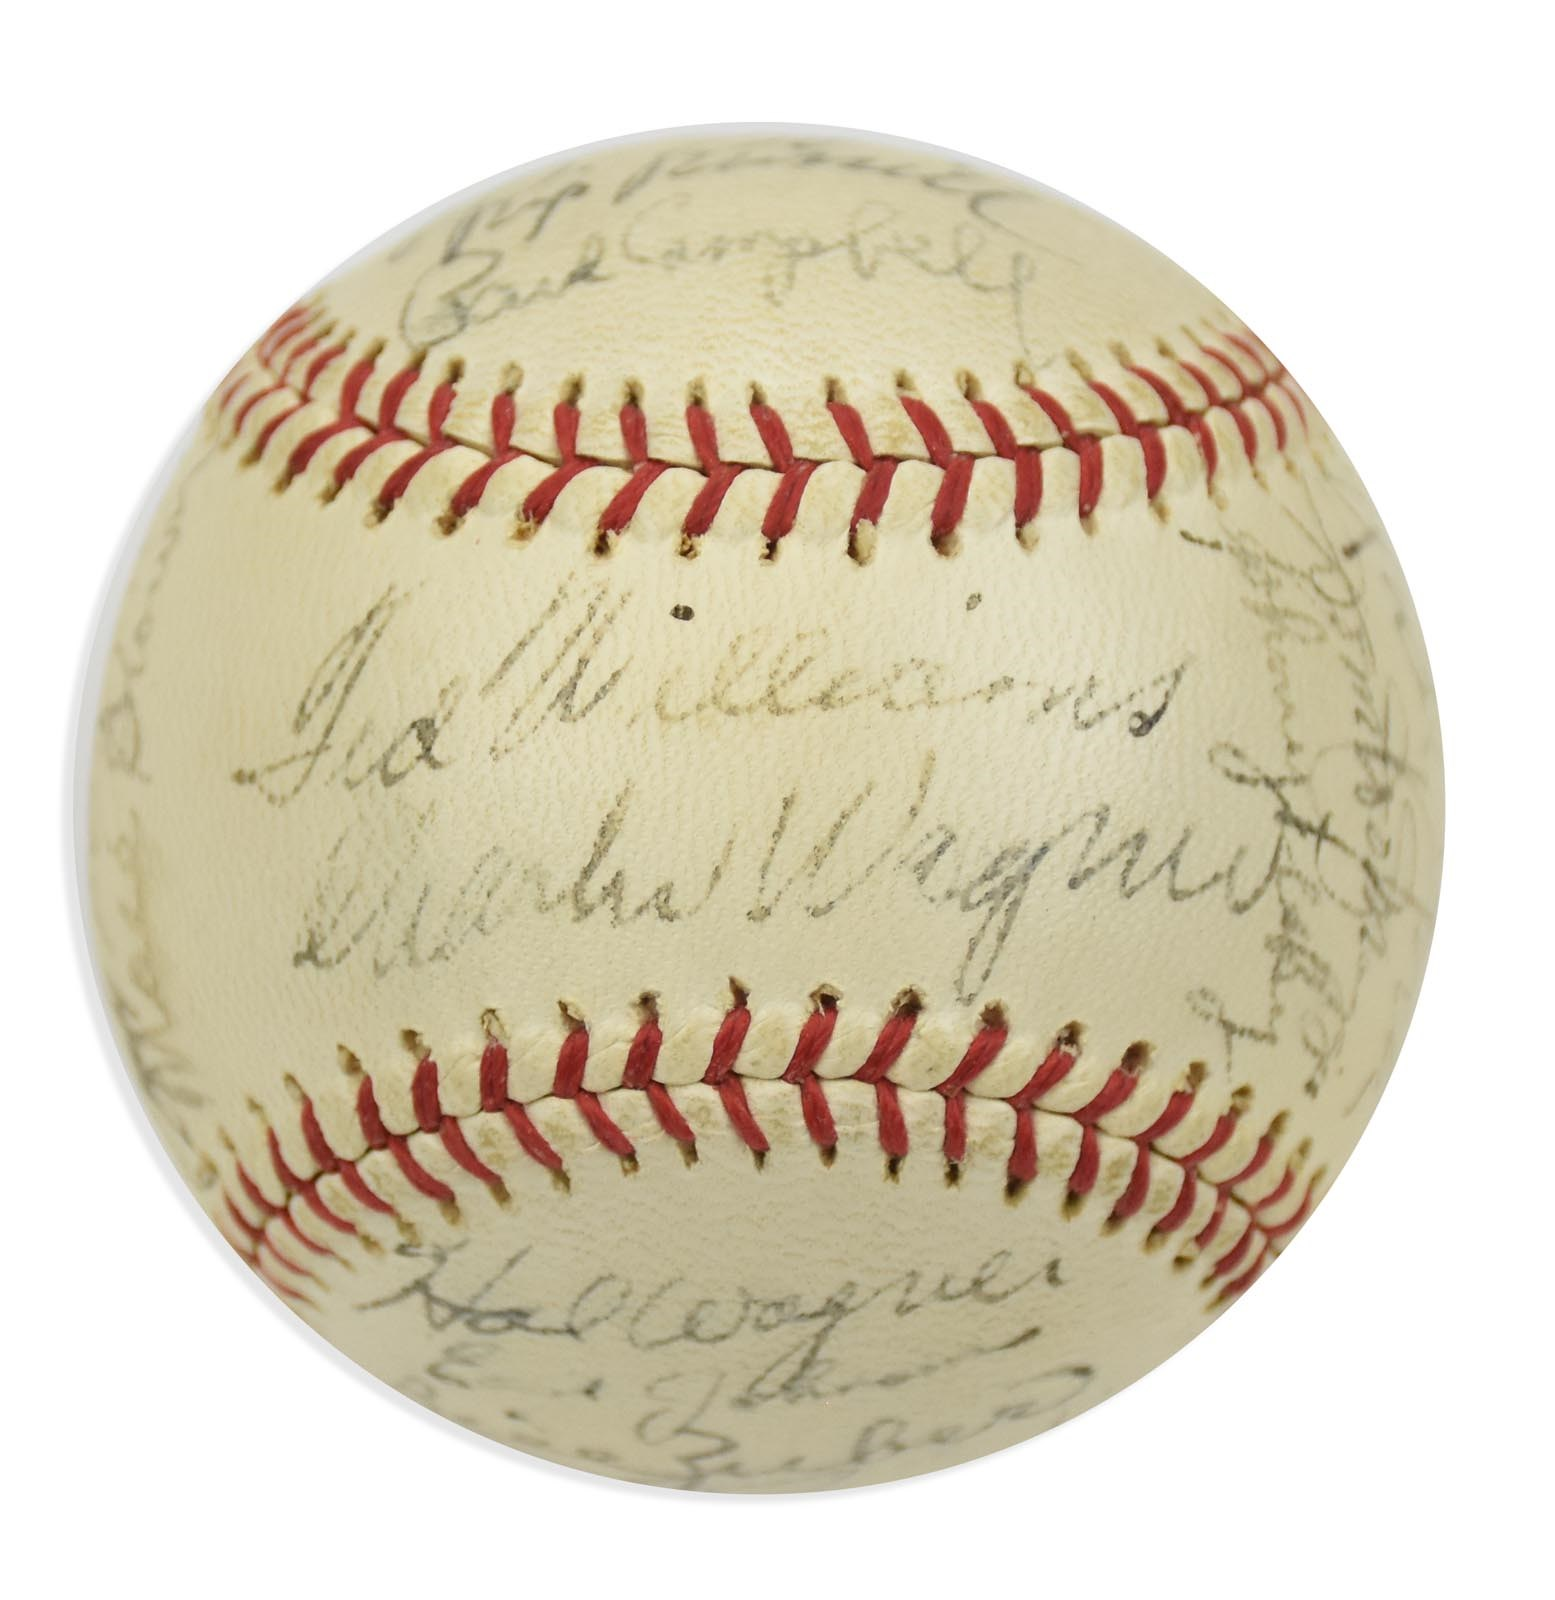 1946 American League Champion Boston Red Sox Team Signed Baseball (Beckett)